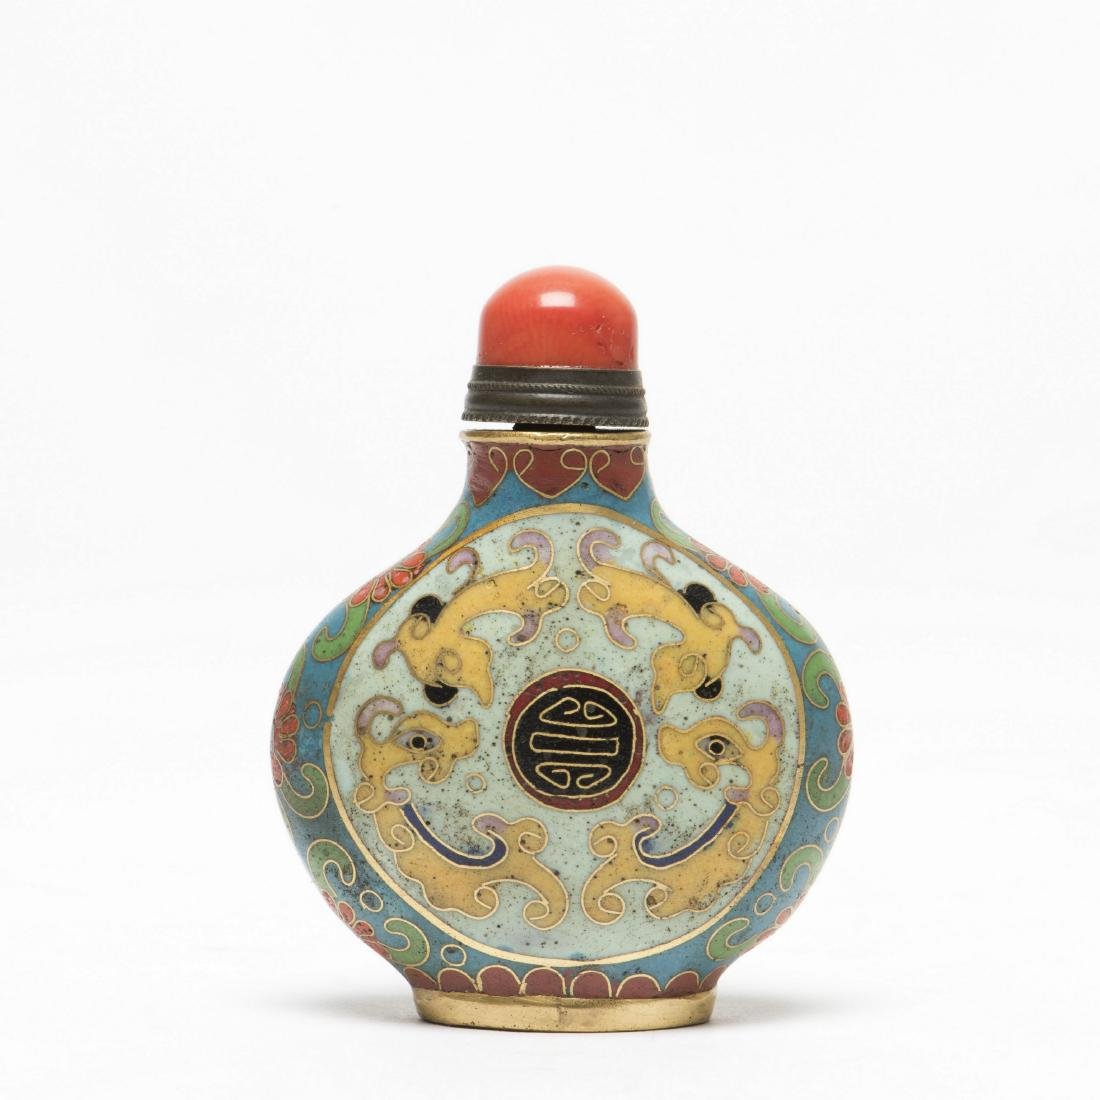 A CLOISONNE SNUFF BOTTLE